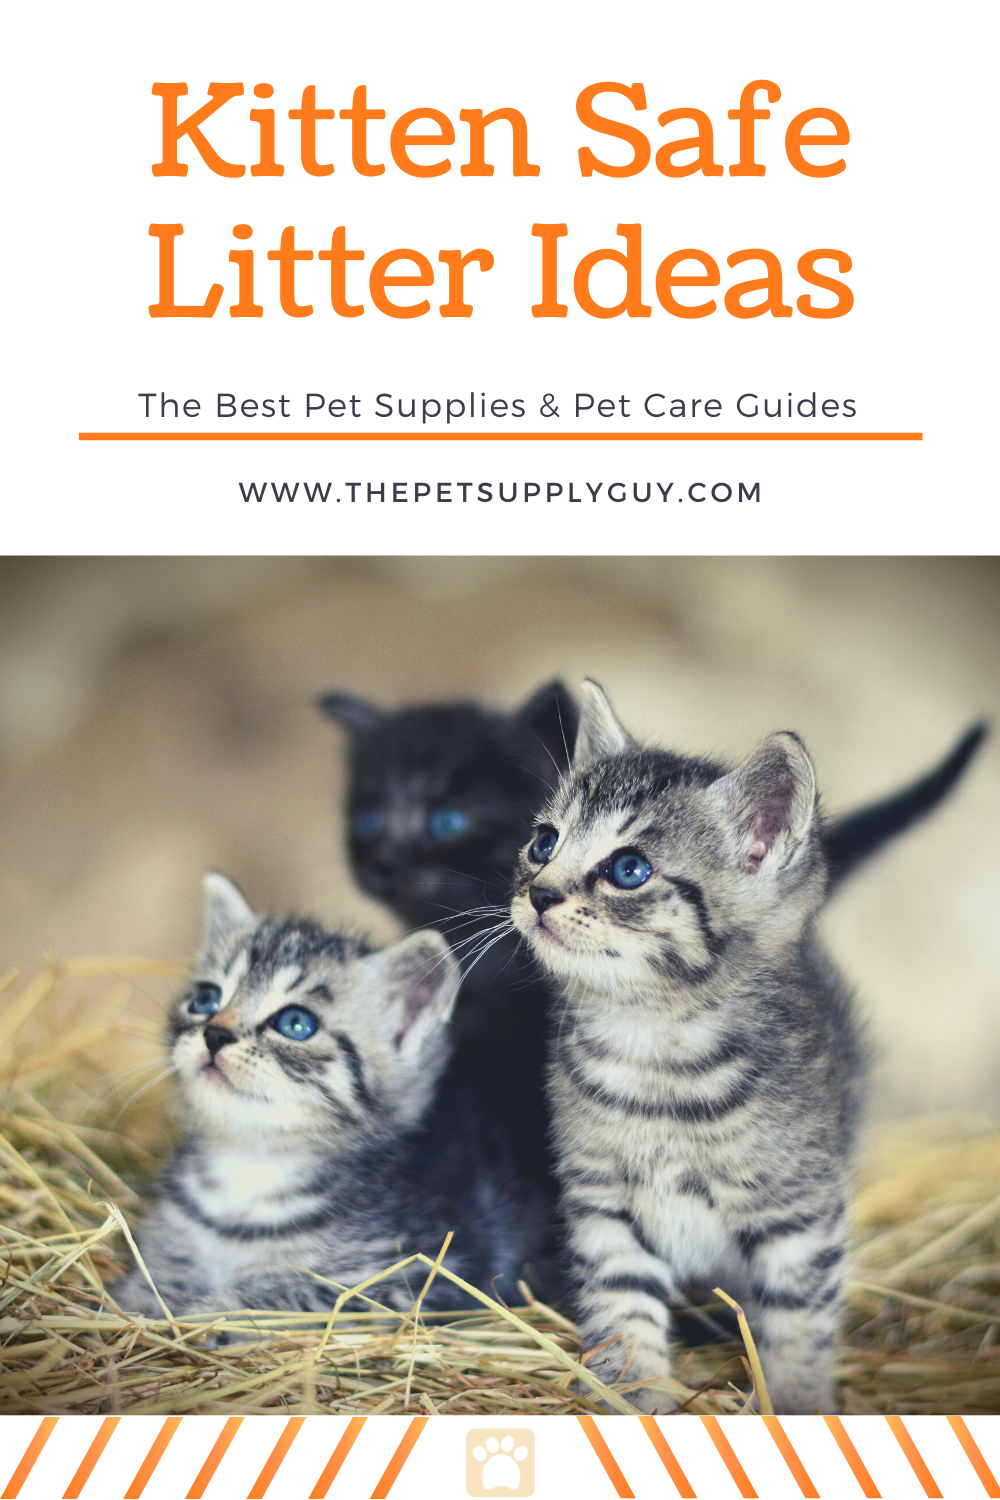 Best Cat Litter For Kittens Buying Guide Thepetsupplyguy Pet Pets Animal Cat Cats Feline Kitten Kittens